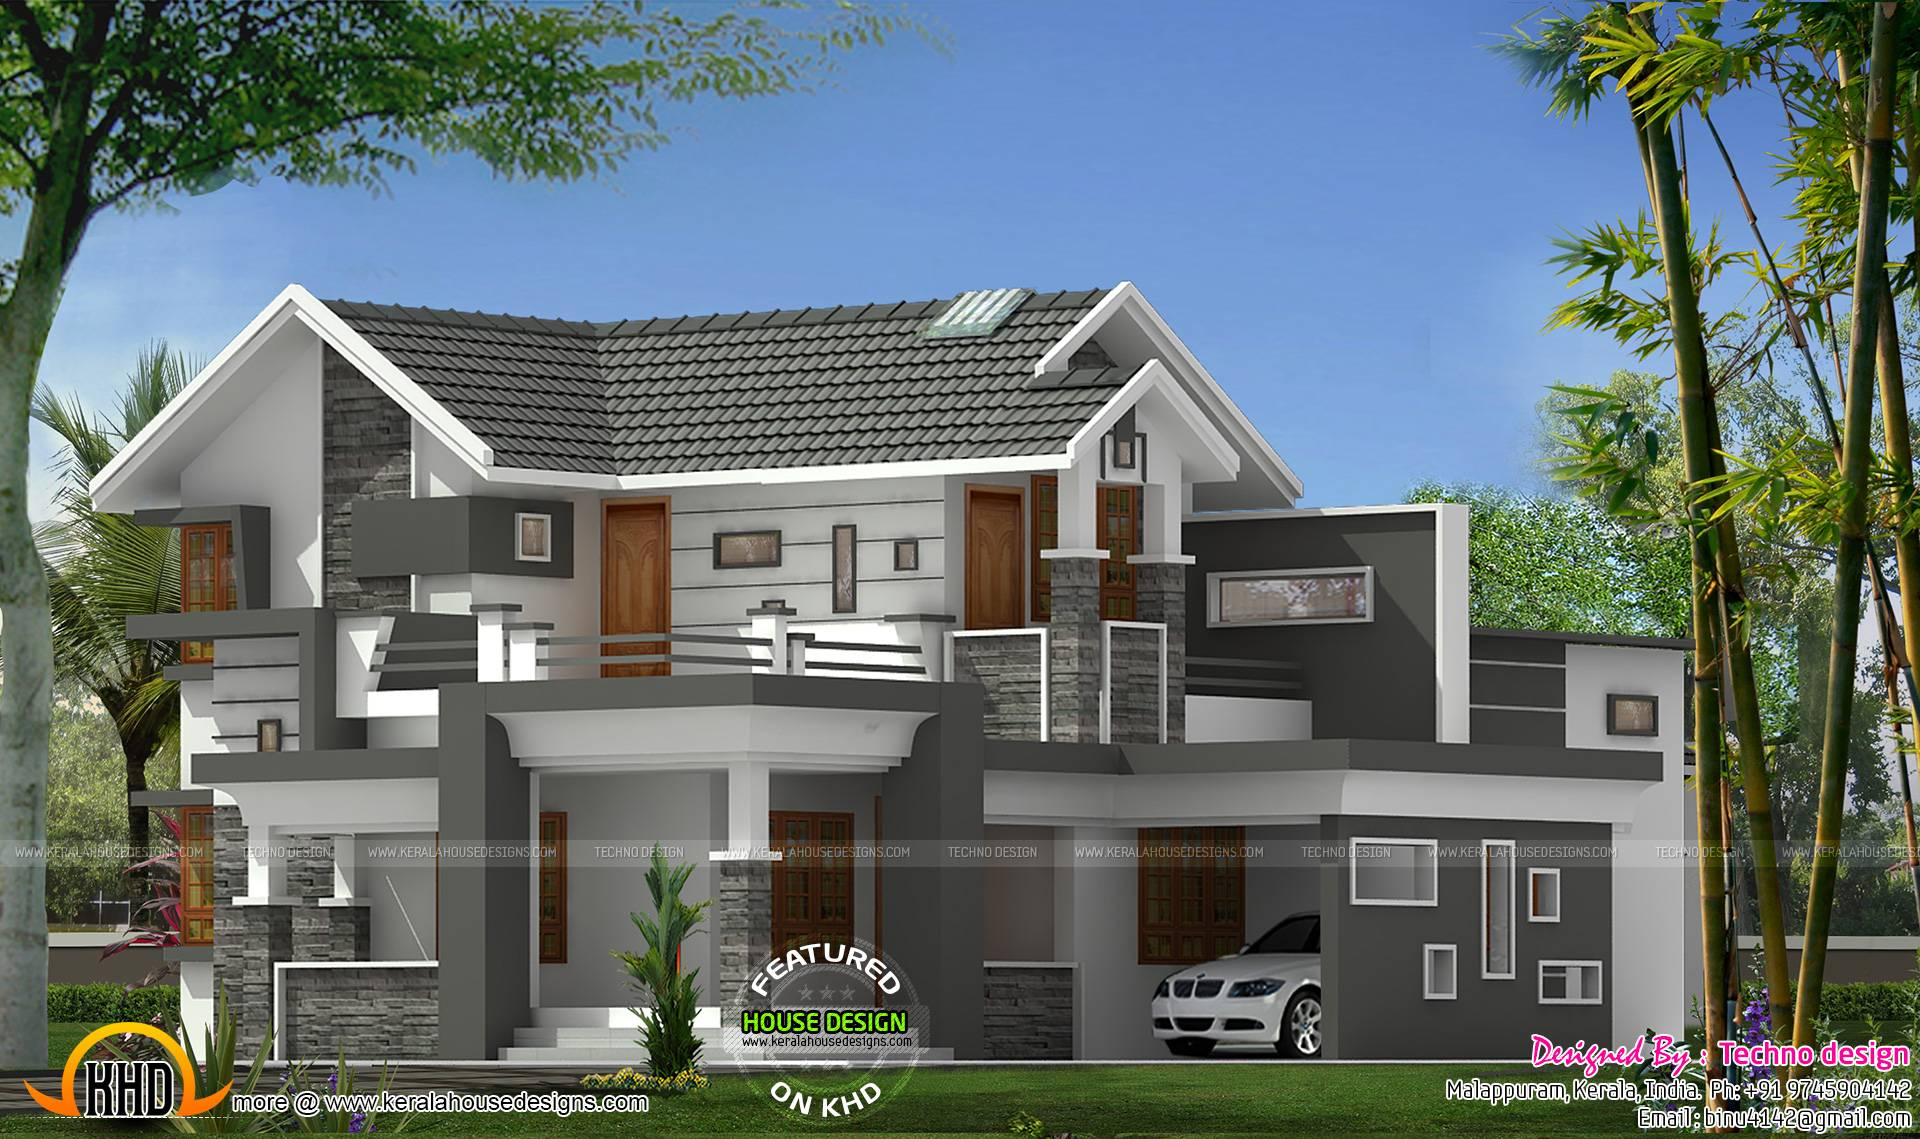 Sloped Roof Modern Mix House Kerala Home Design Floor Plans Home Plans Blueprints 47276